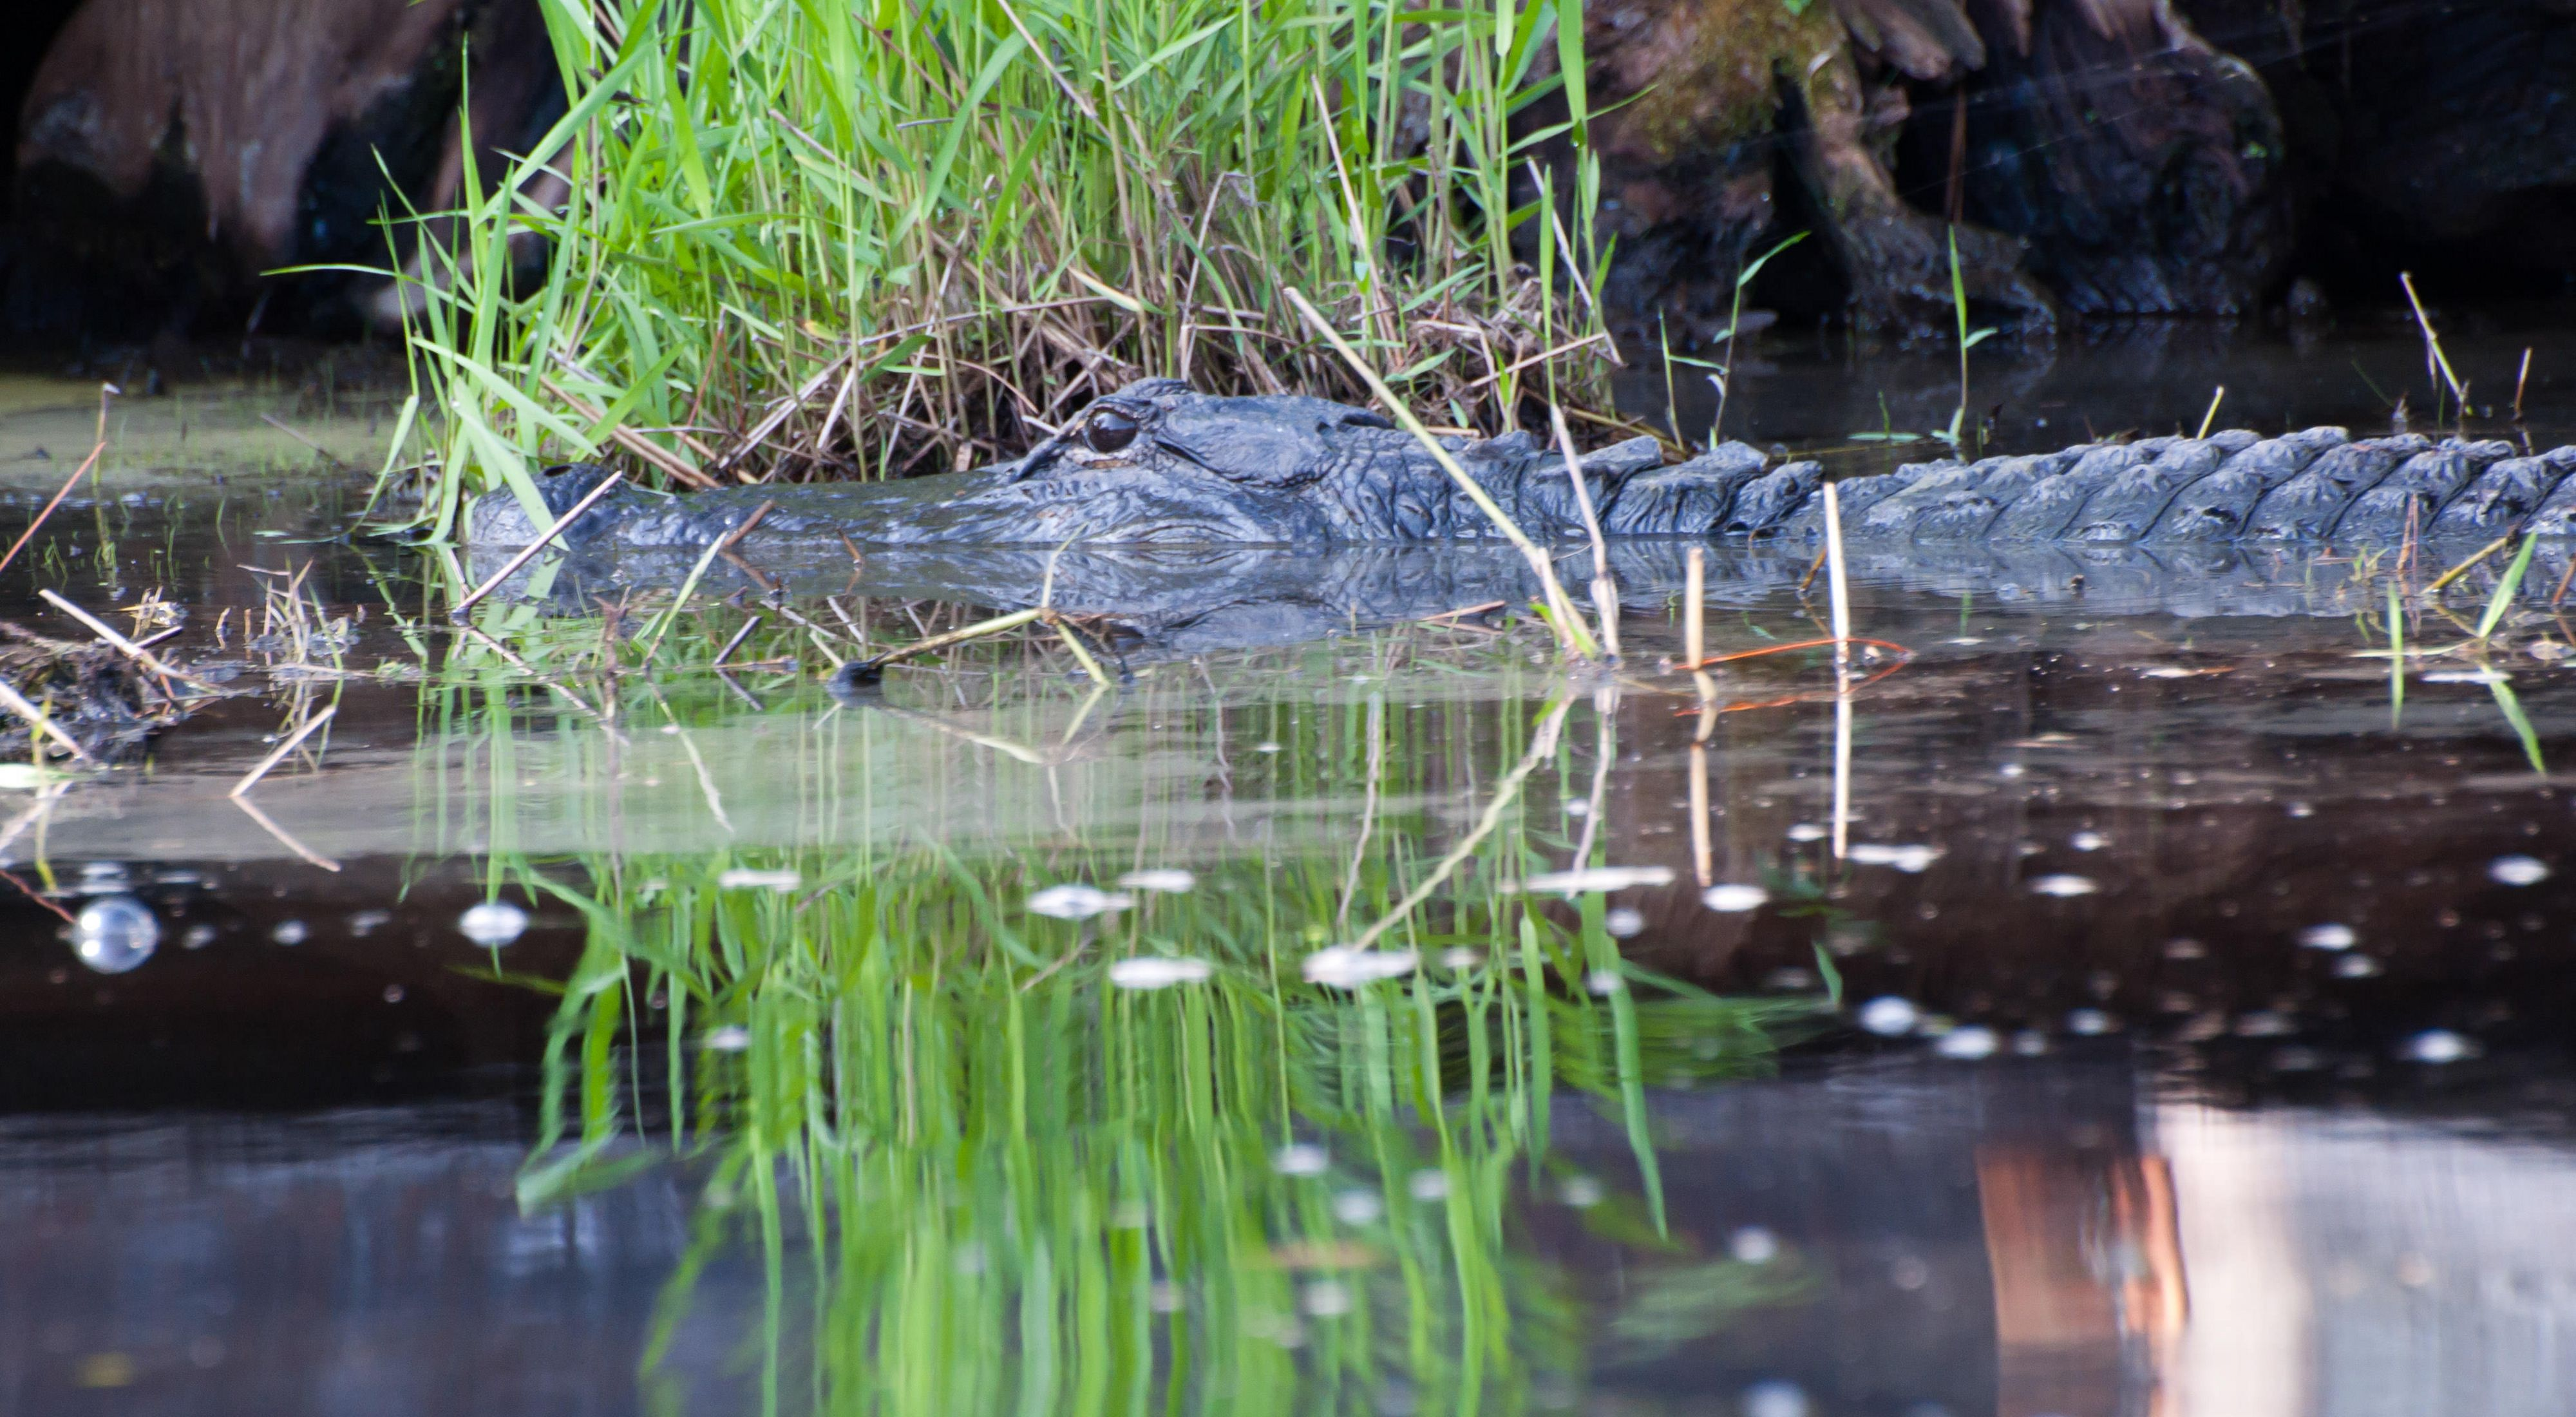 An alligator rests within a swamp at Okefenokee National Wildlife Refuge.